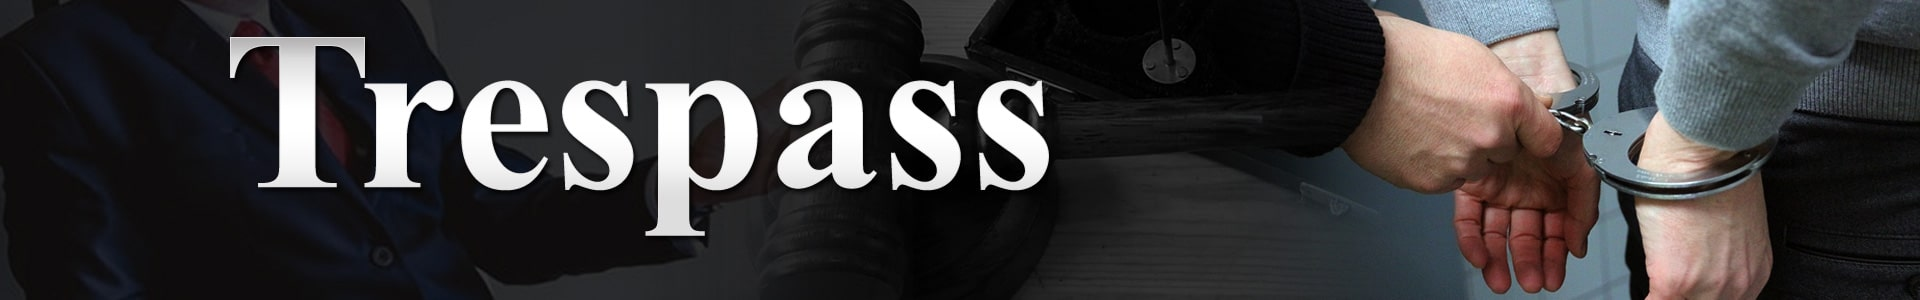 Trespass-Defense-Lawyer